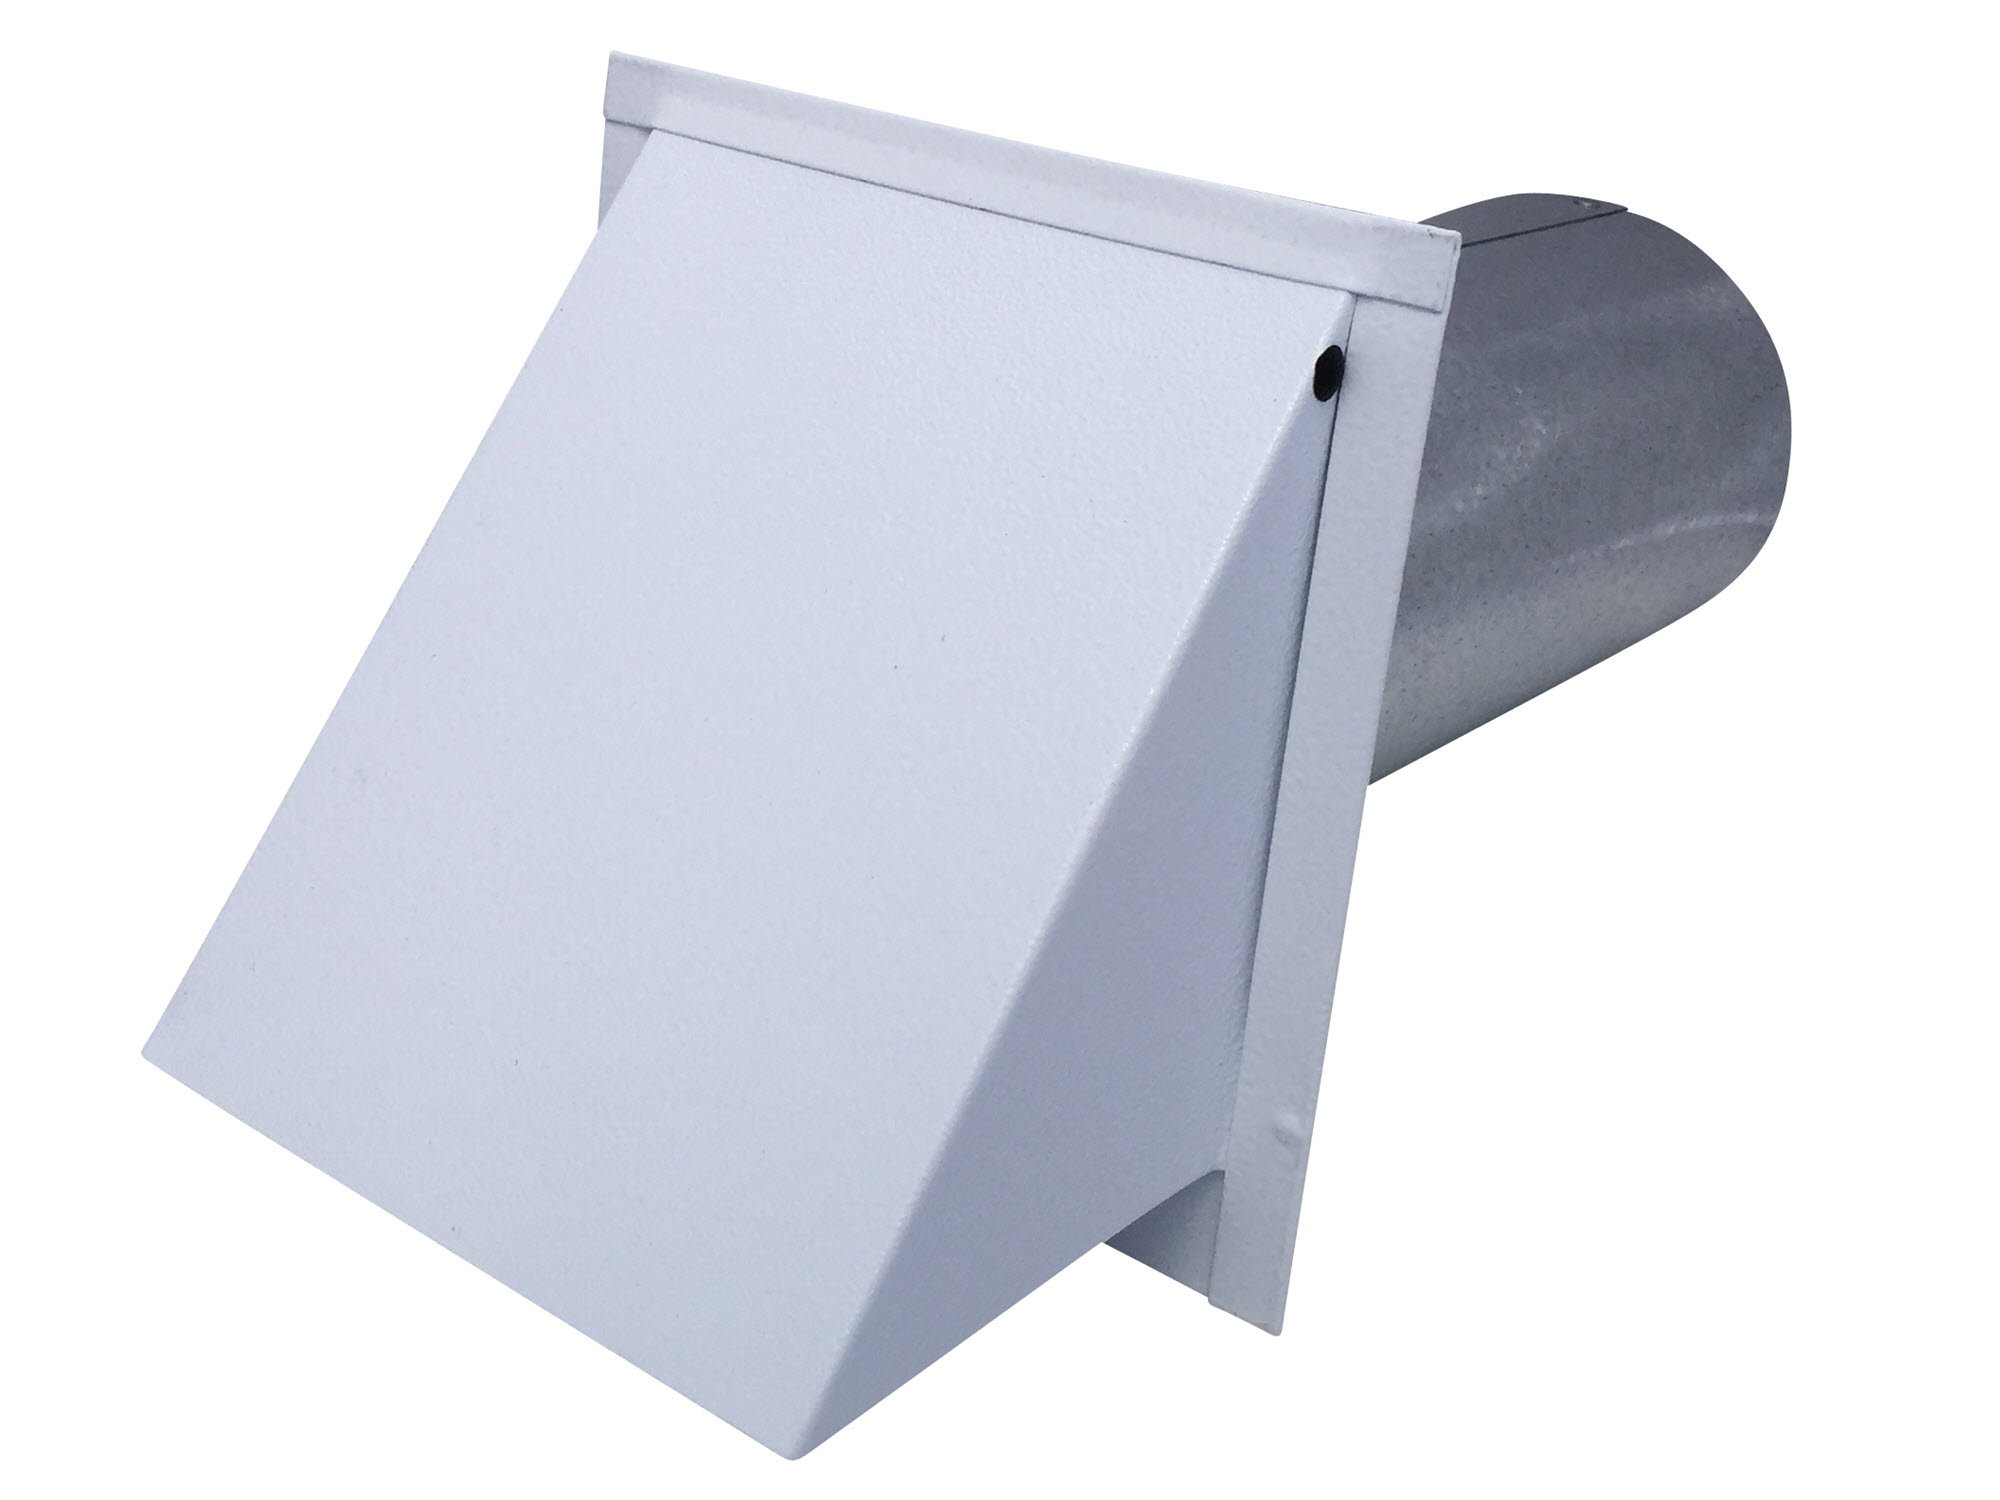 5 Inch Wall Vent Painted White Damper & Screen (5 Inch diameter) - Vent Works